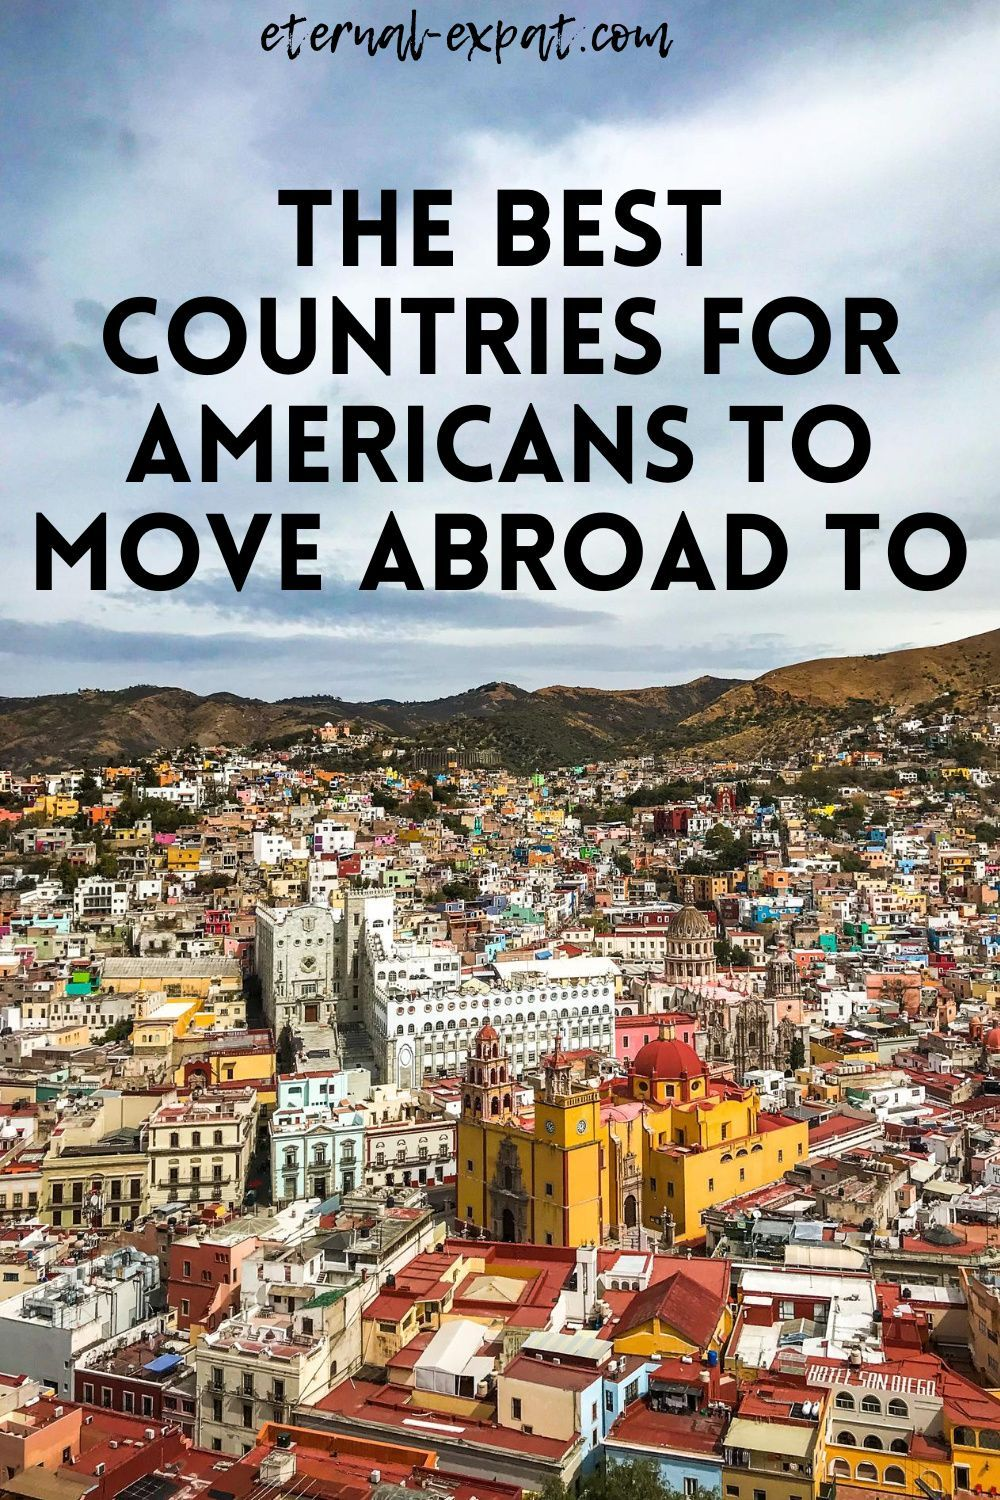 The Best Countries for Americans to Move | Eternal